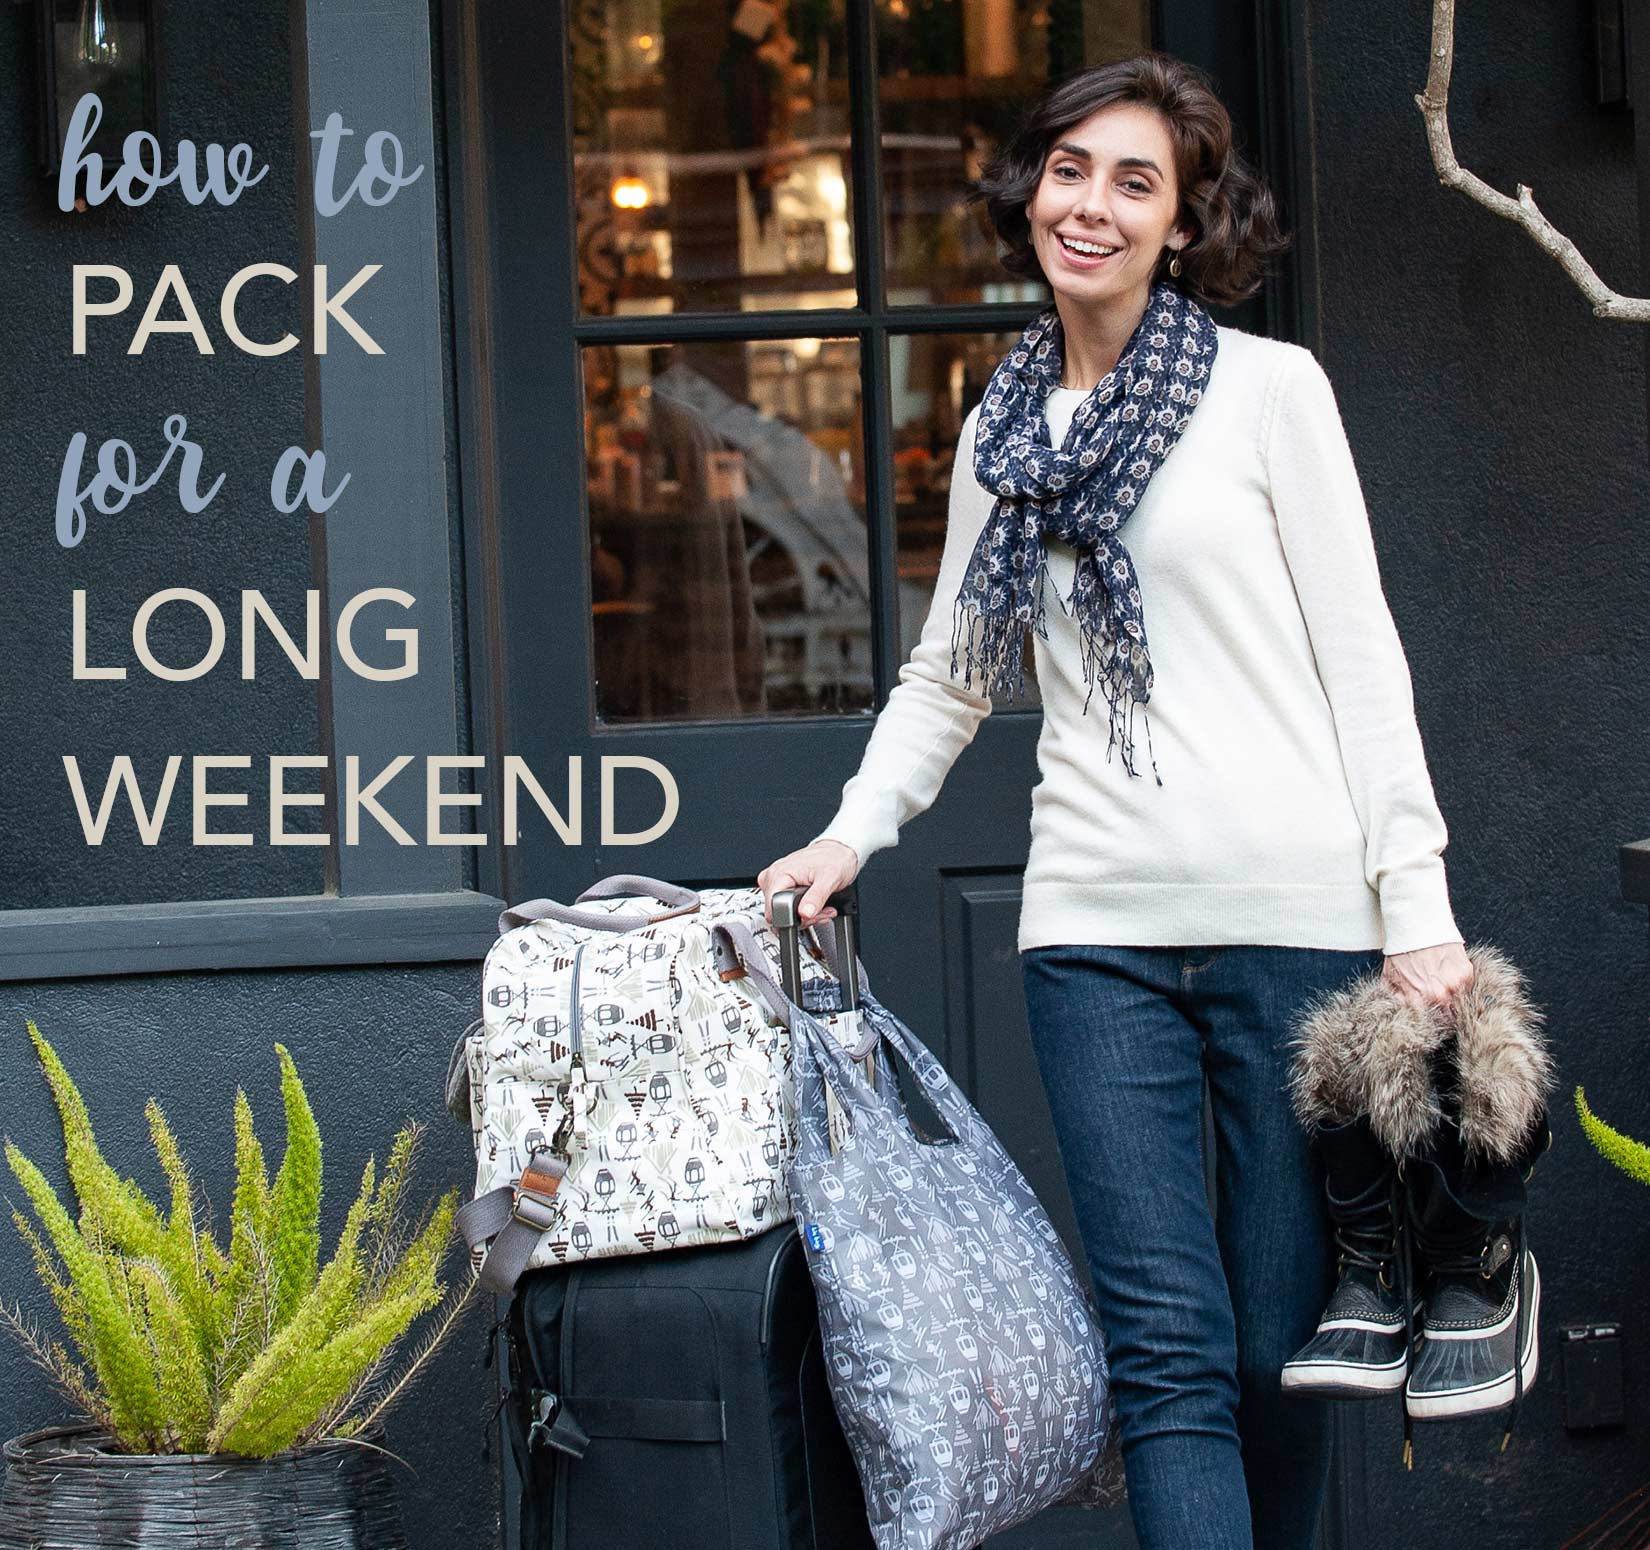 how to pack for a long weekend - woman wearing a scarf and holding a suitcase and overnighter bag